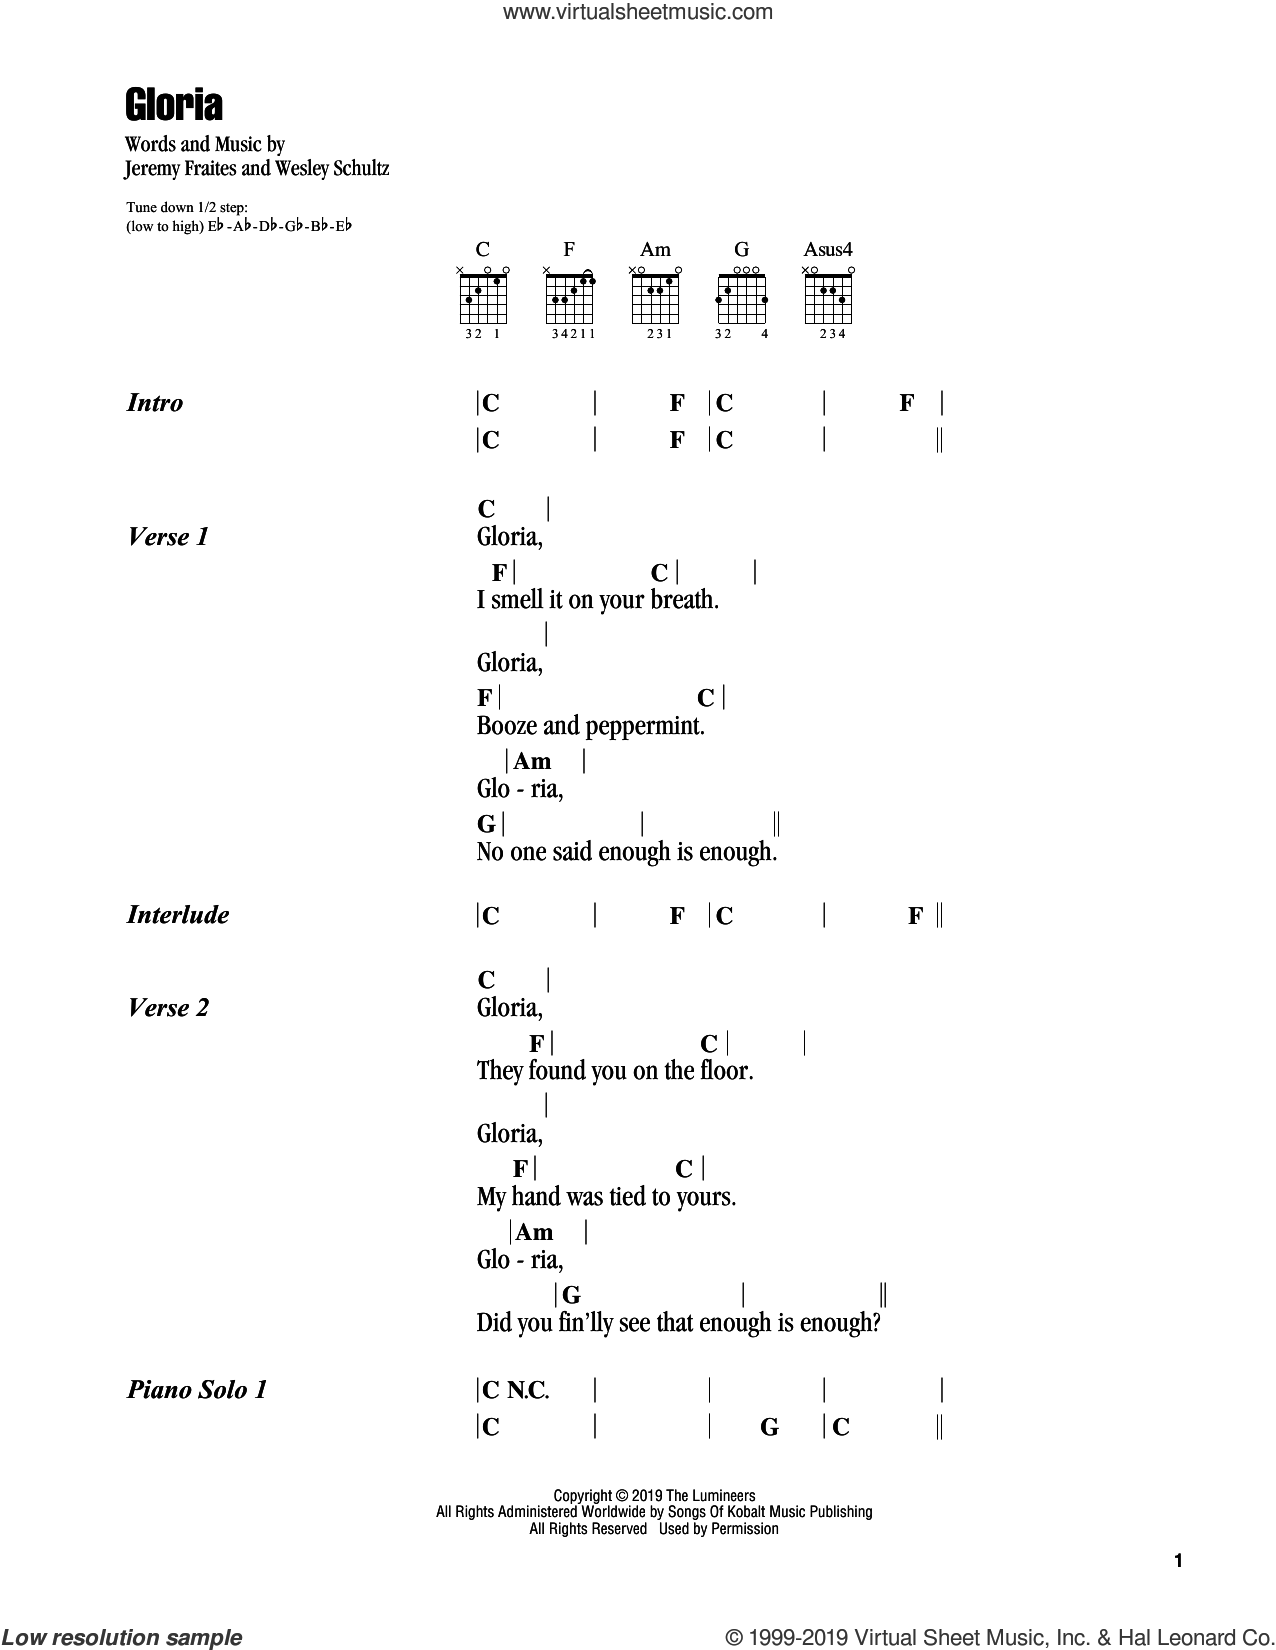 Gloria sheet music for guitar (chords) by The Lumineers, Jeremy Fraites and Wesley Schultz, intermediate skill level